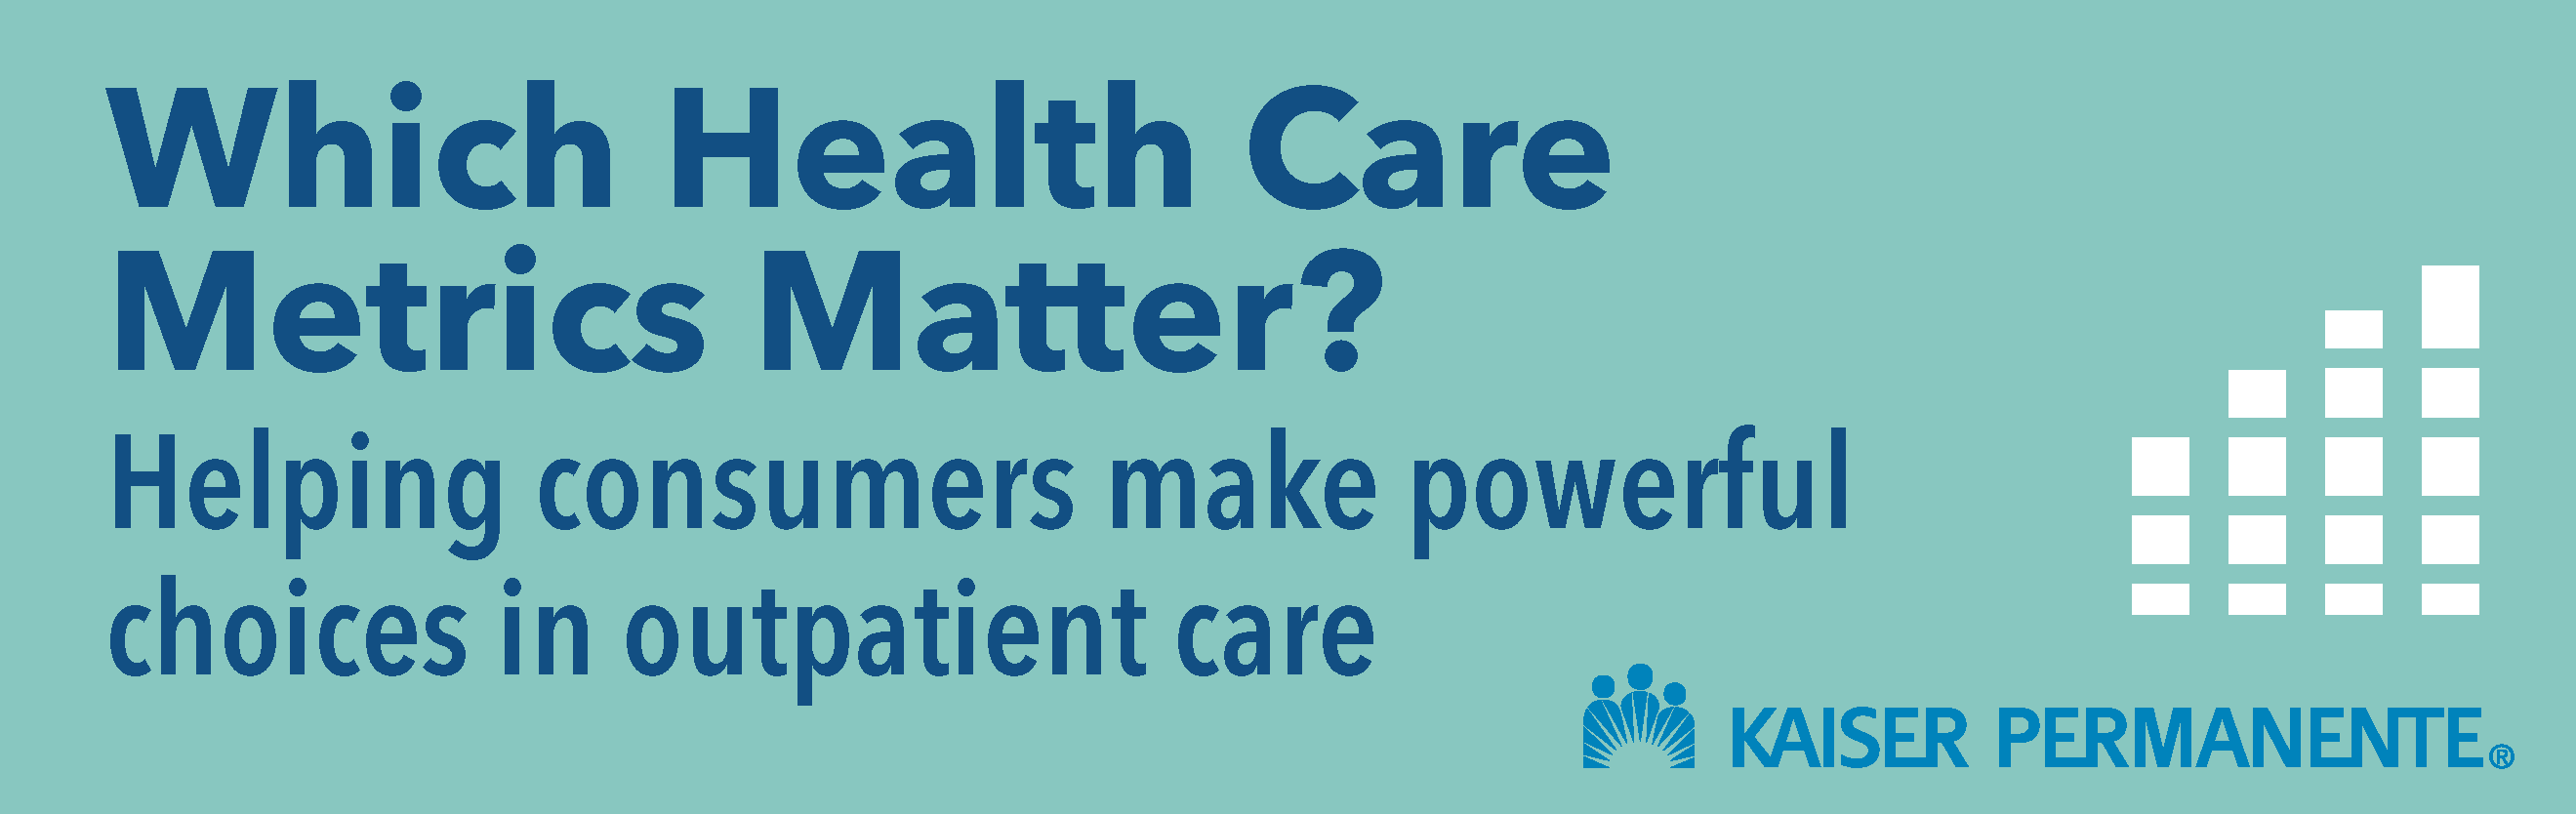 Which Health Care Metrics Matter?